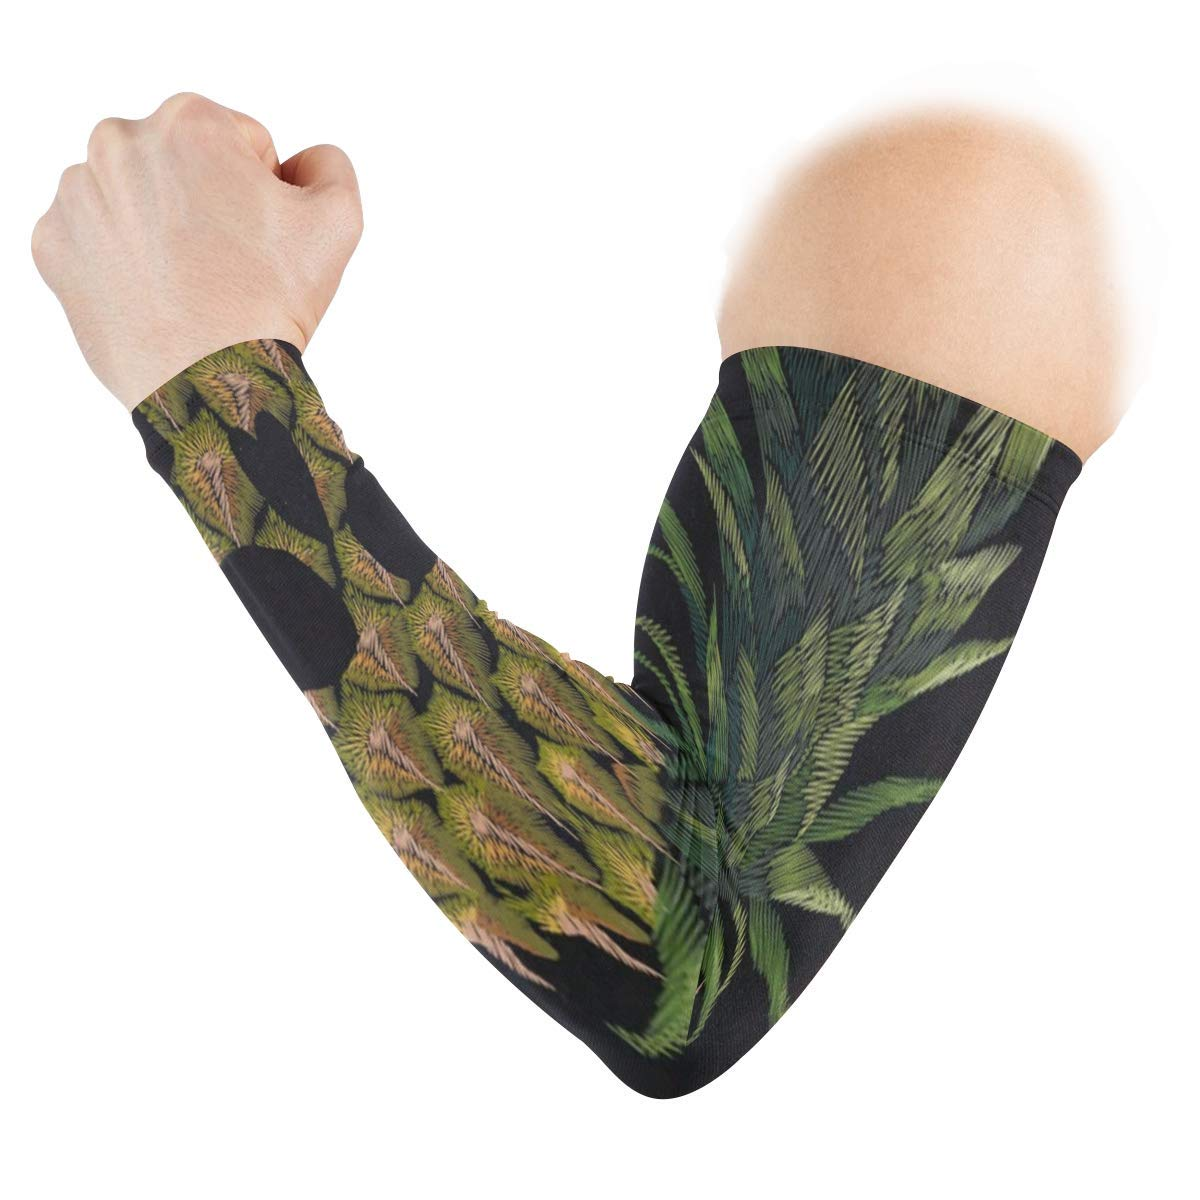 Arm Sleeves Skull Pineapple Mens Sun UV Protection Sleeves Arm Warmers Cool Long Set Covers White